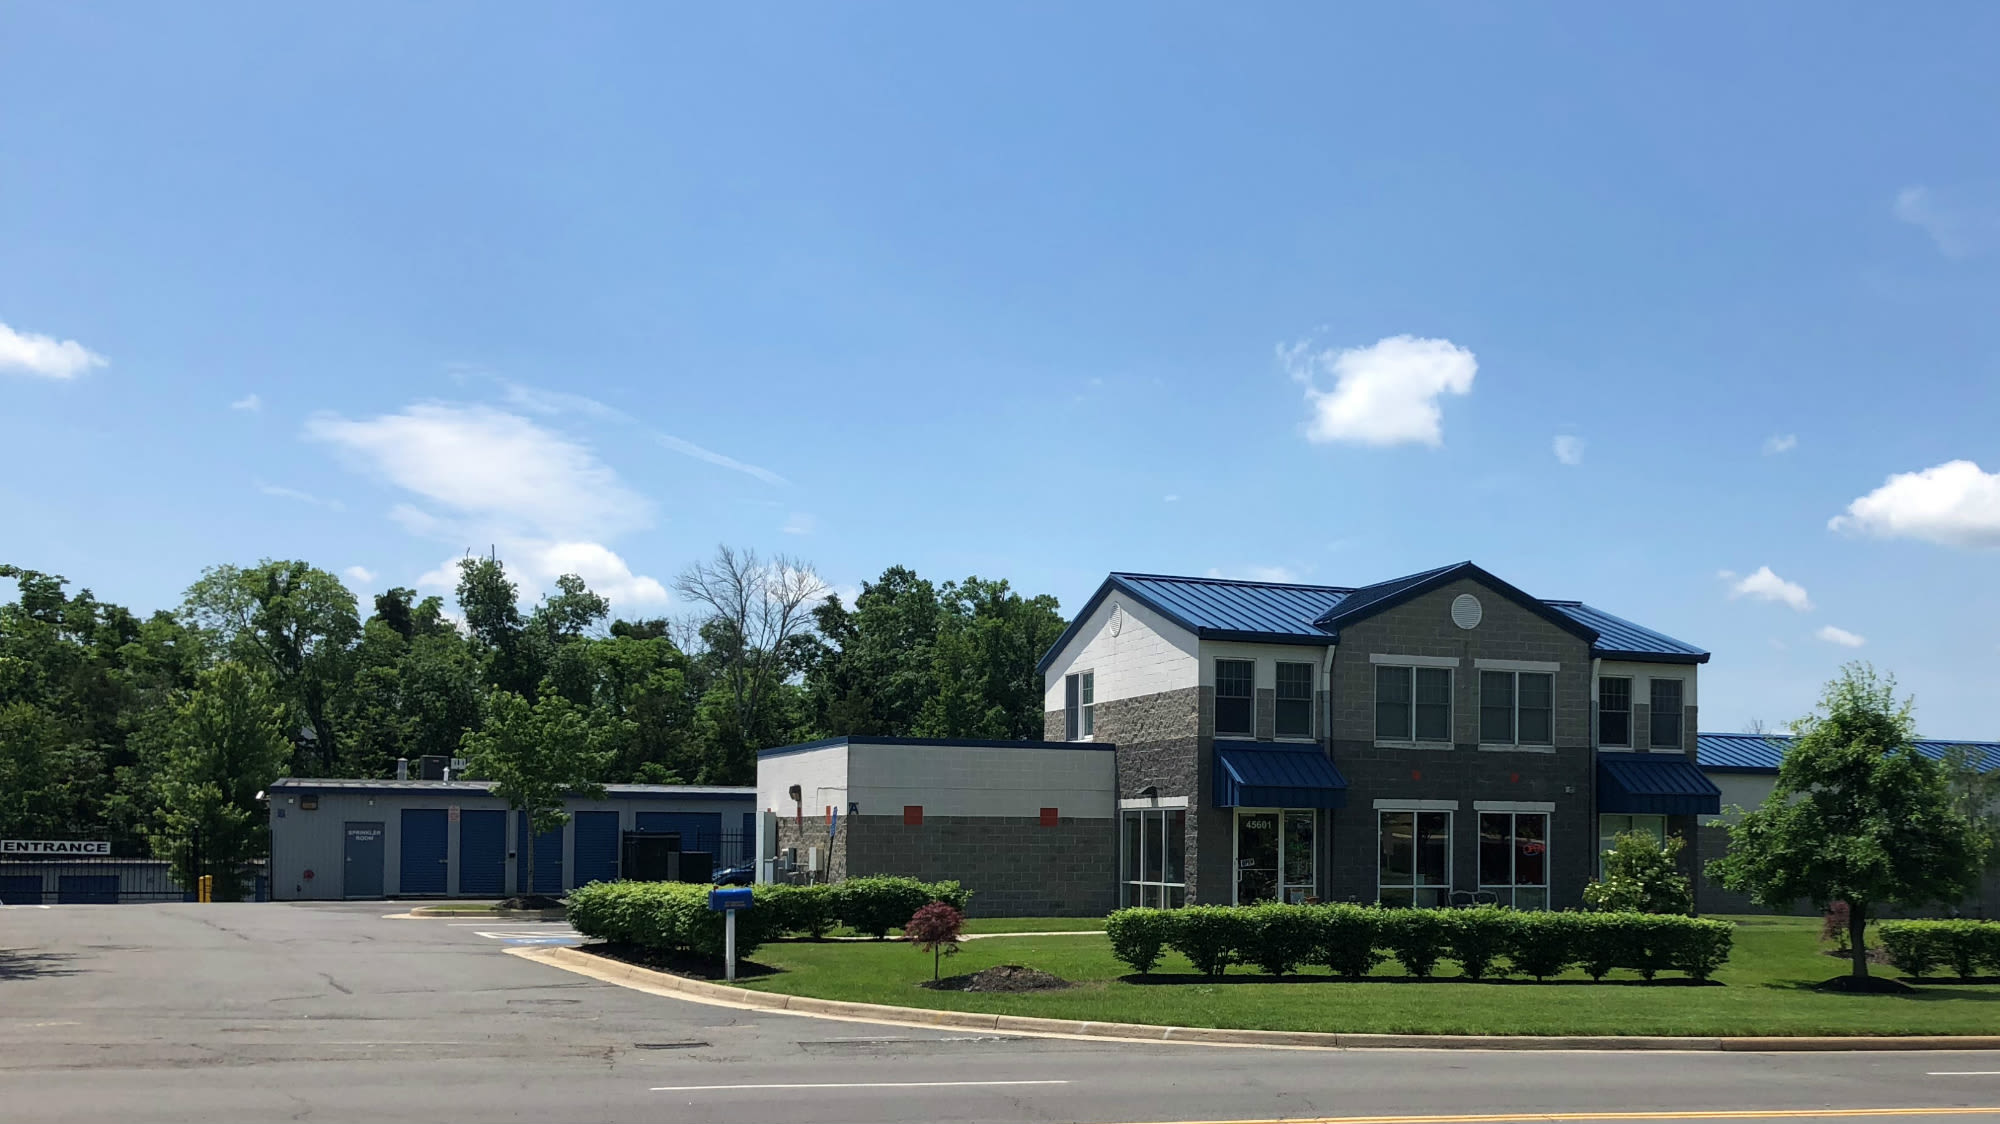 Exterior view of Self Storage Plus in Sterling, VA